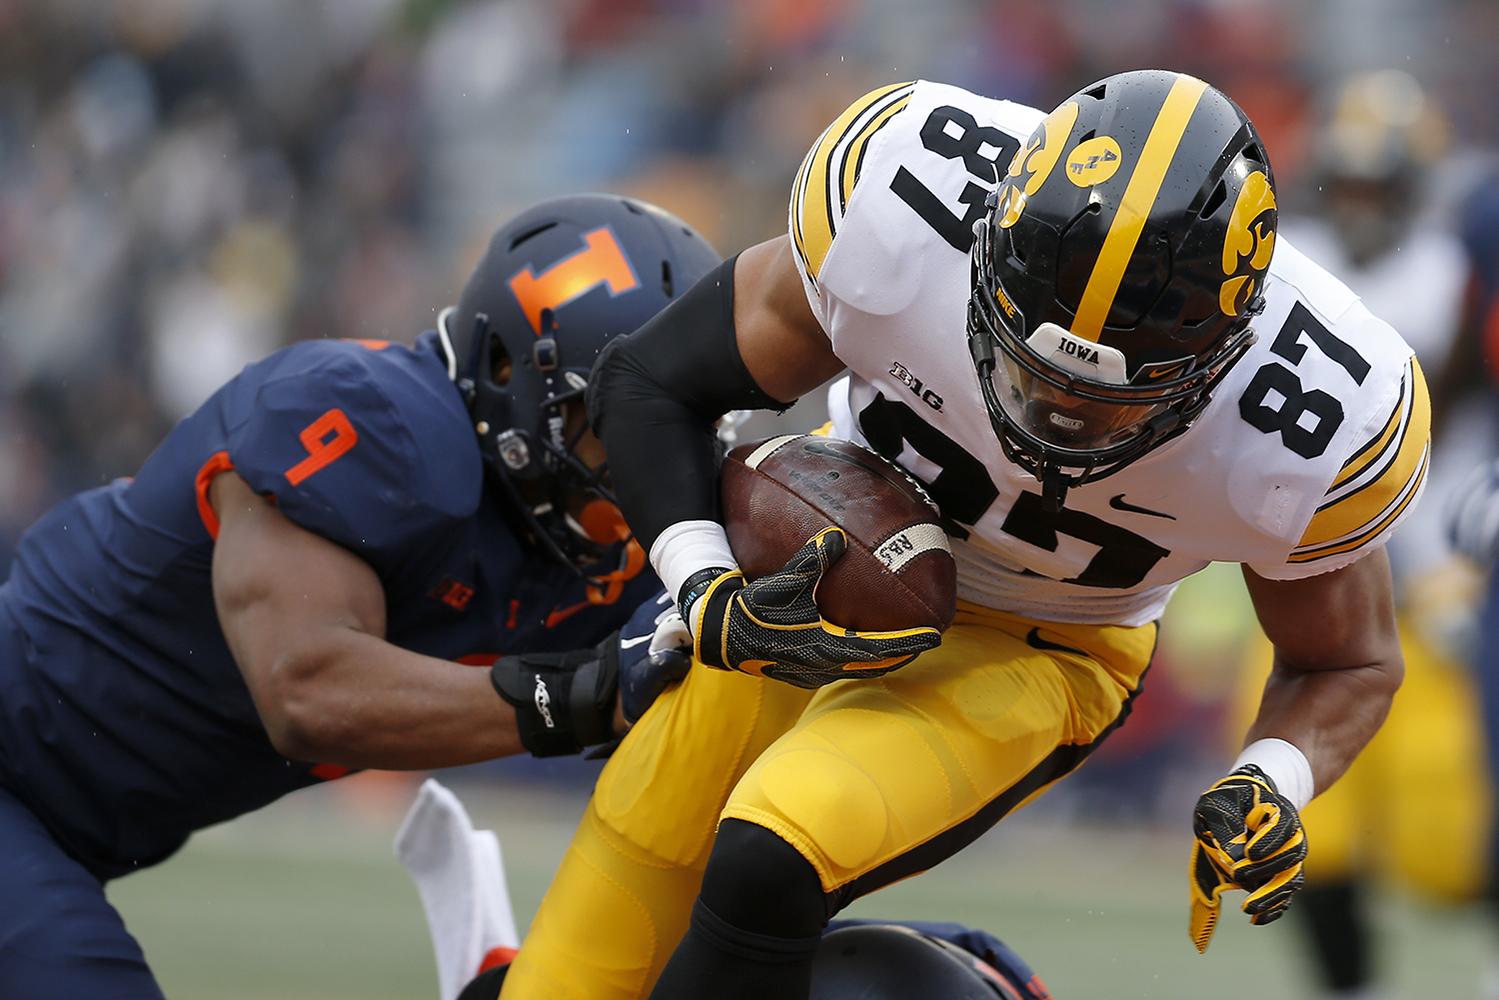 Iowa tight end Noah Fant dives for a touchdown during Iowa's game against Illinois at Memorial Stadium in Champaign, IL, on Saturday, Nov. 17, 2018. The Hawkeyes defeated the Fighting Illini 63-0.